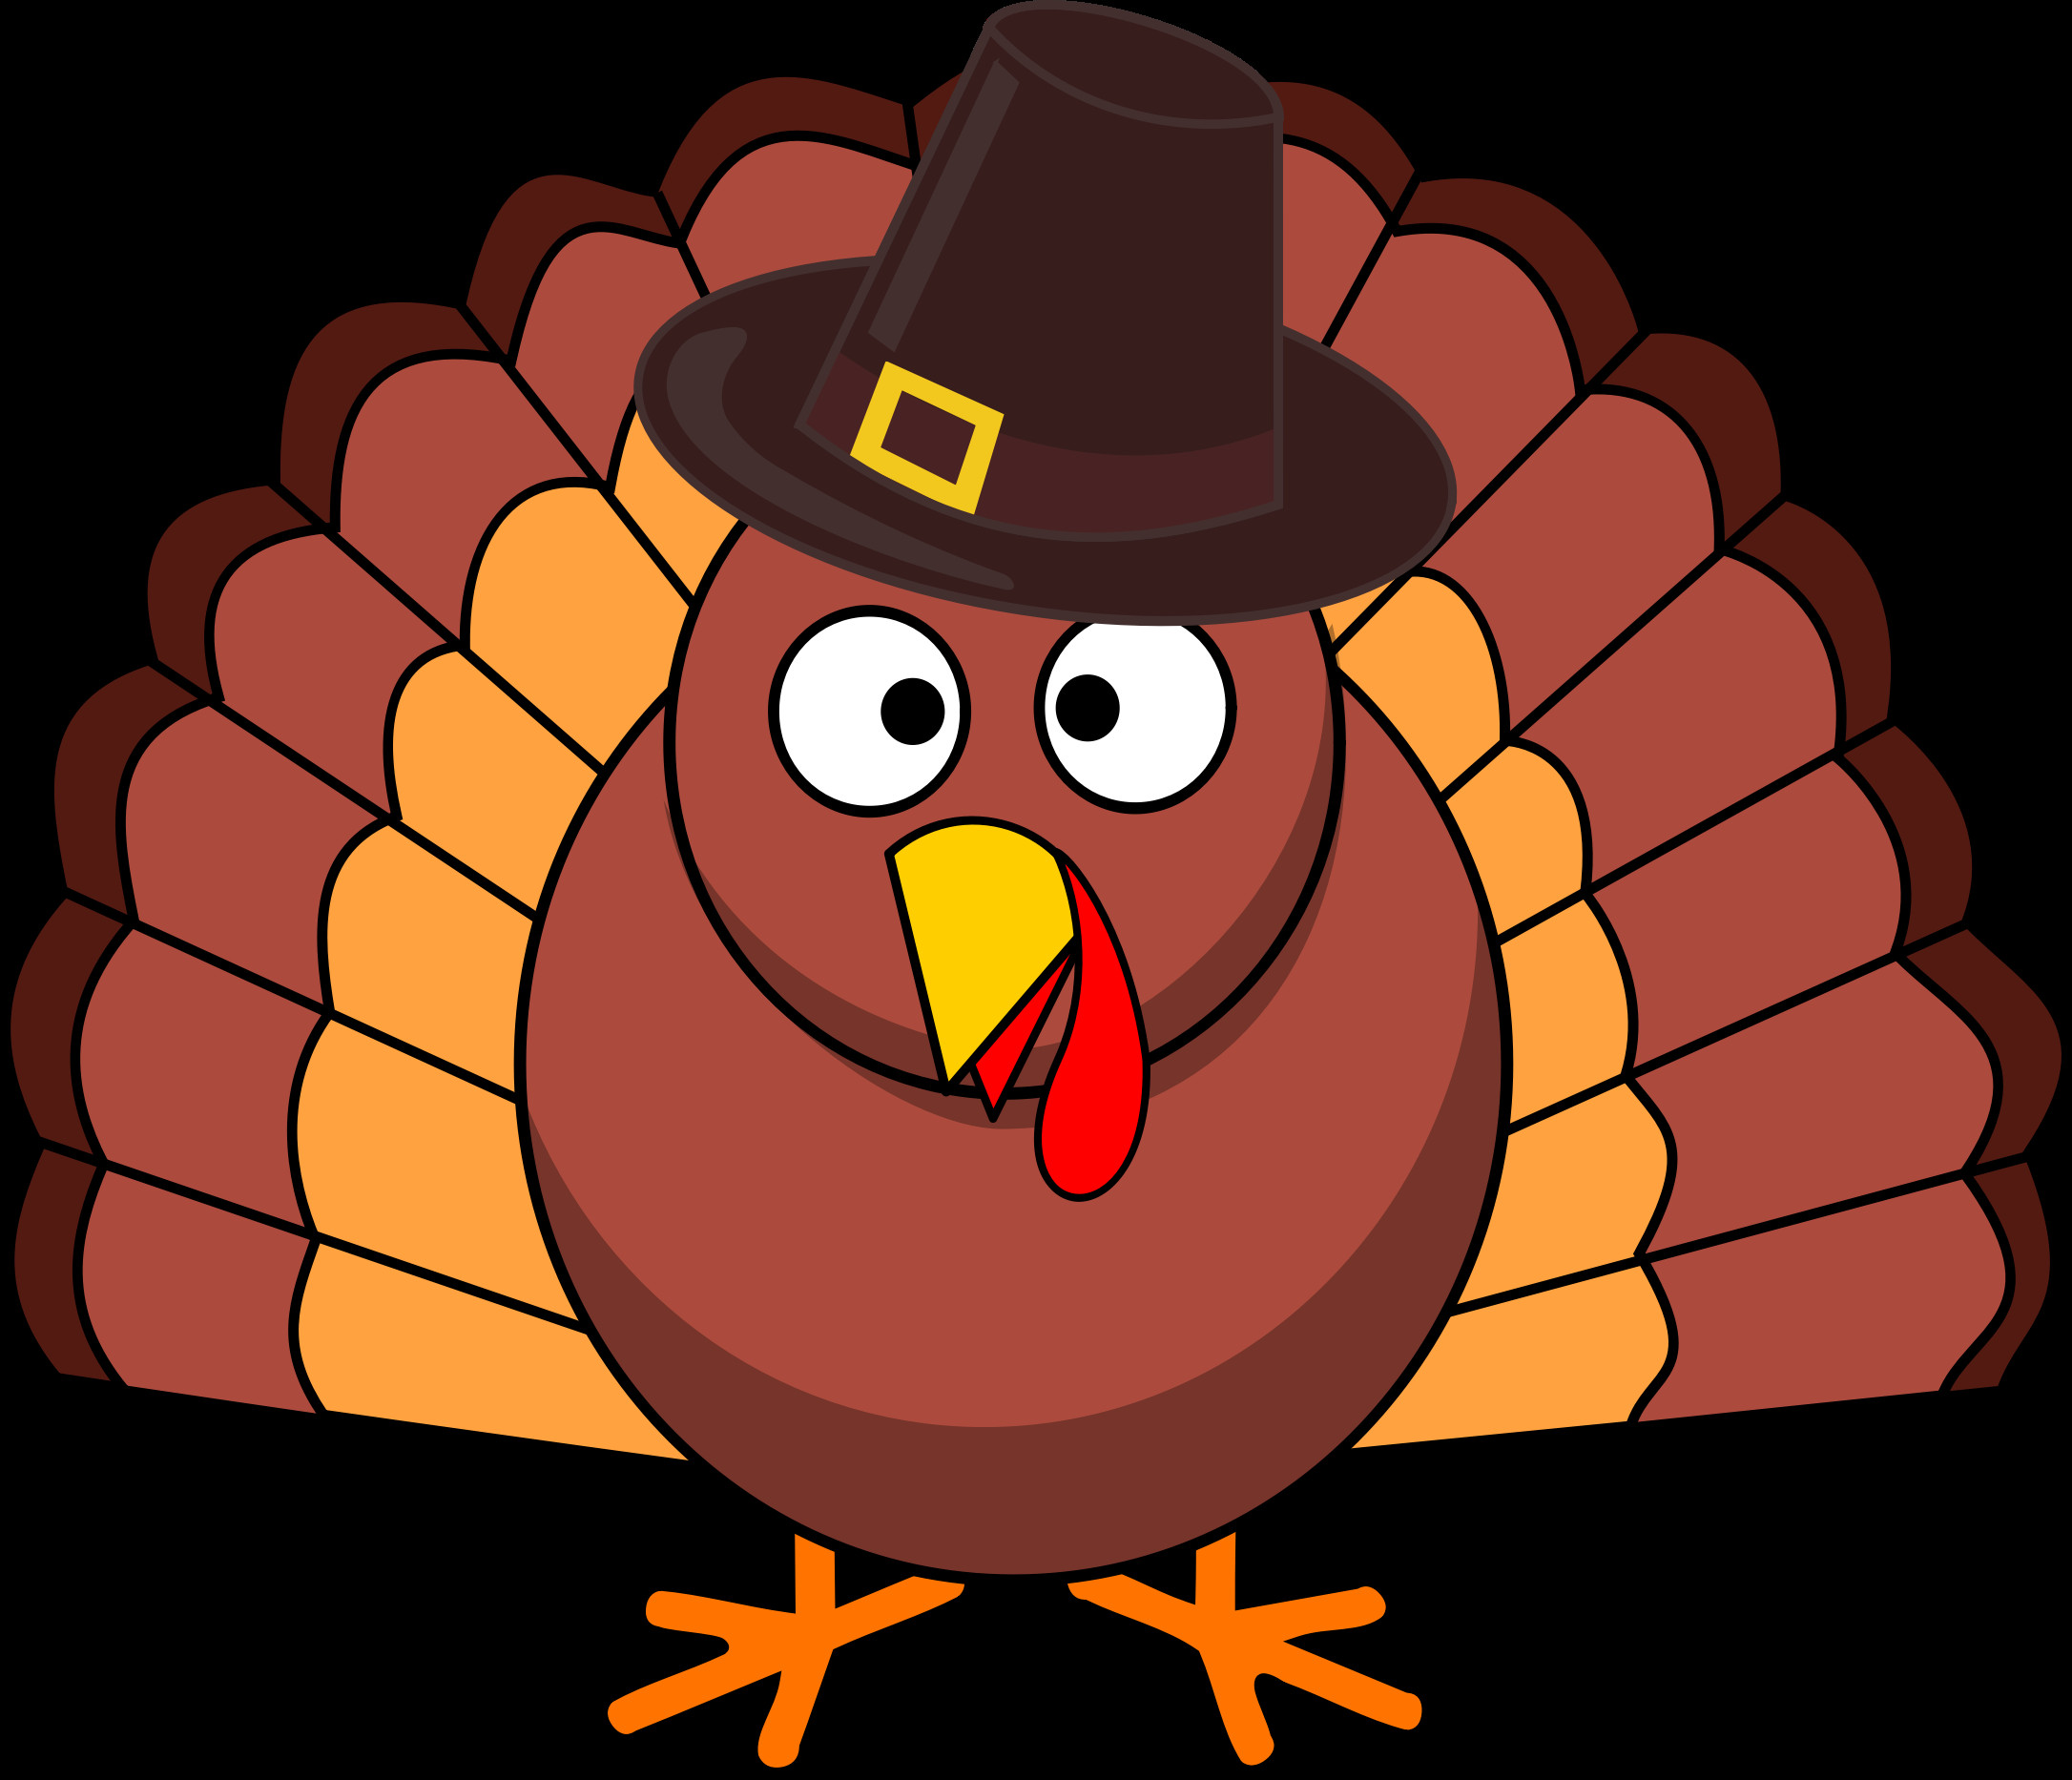 Turkey Thanksgiving Clipart  Turkey with Pilgrim Hat vector file image Free stock